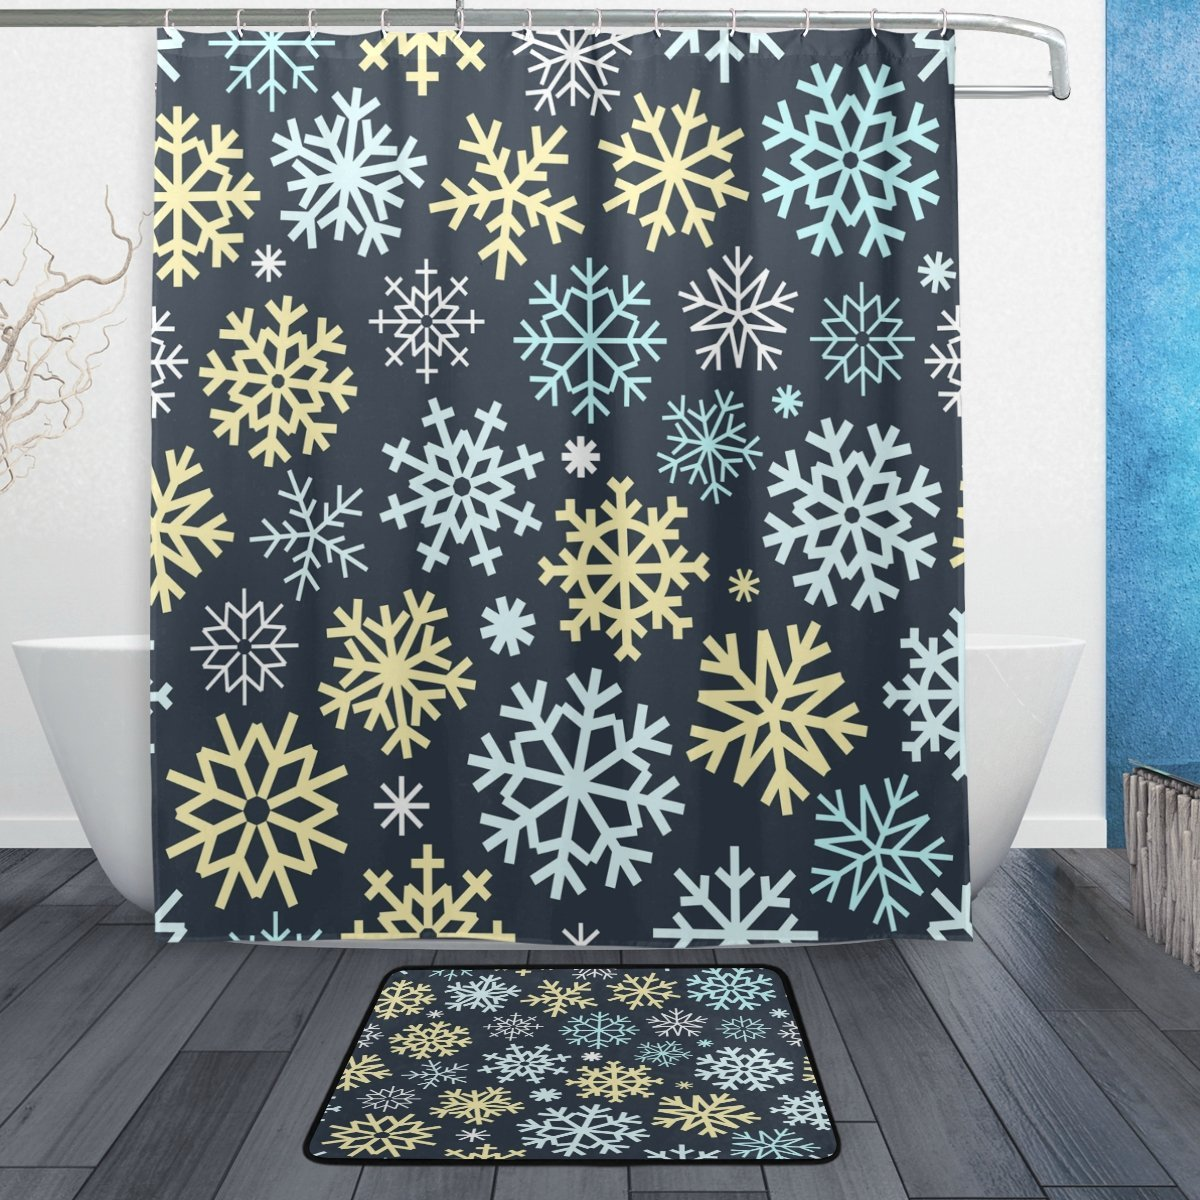 Colorful Snowflake Waterproof Polyester Fabric Shower Curtain with Hooks Doormat Bath Floor Mat Bathroom Home Decor